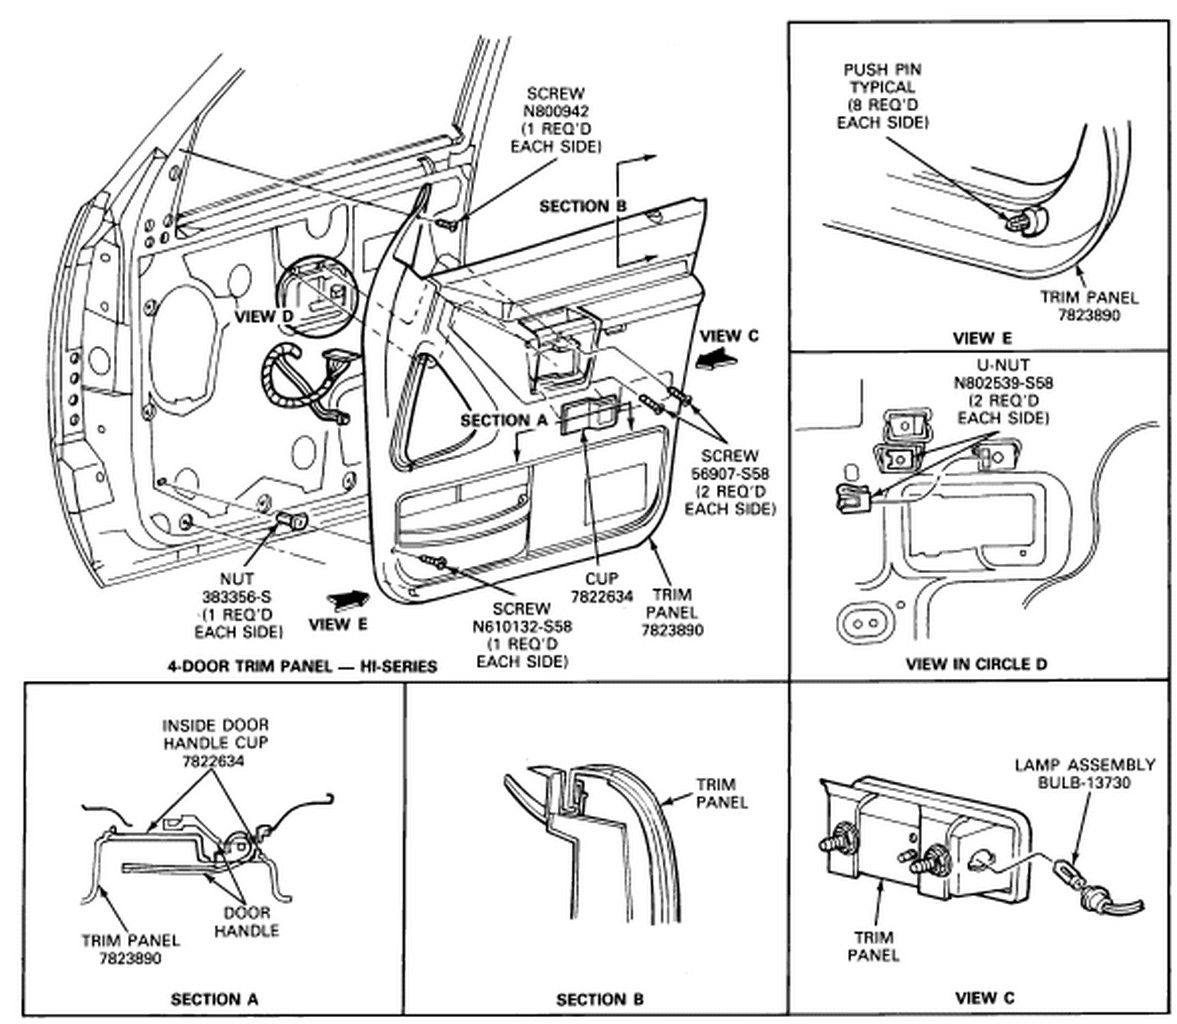 medium resolution of ford fusion door diagram wiring diagram ford fusion door parts diagram ford fusion door diagram